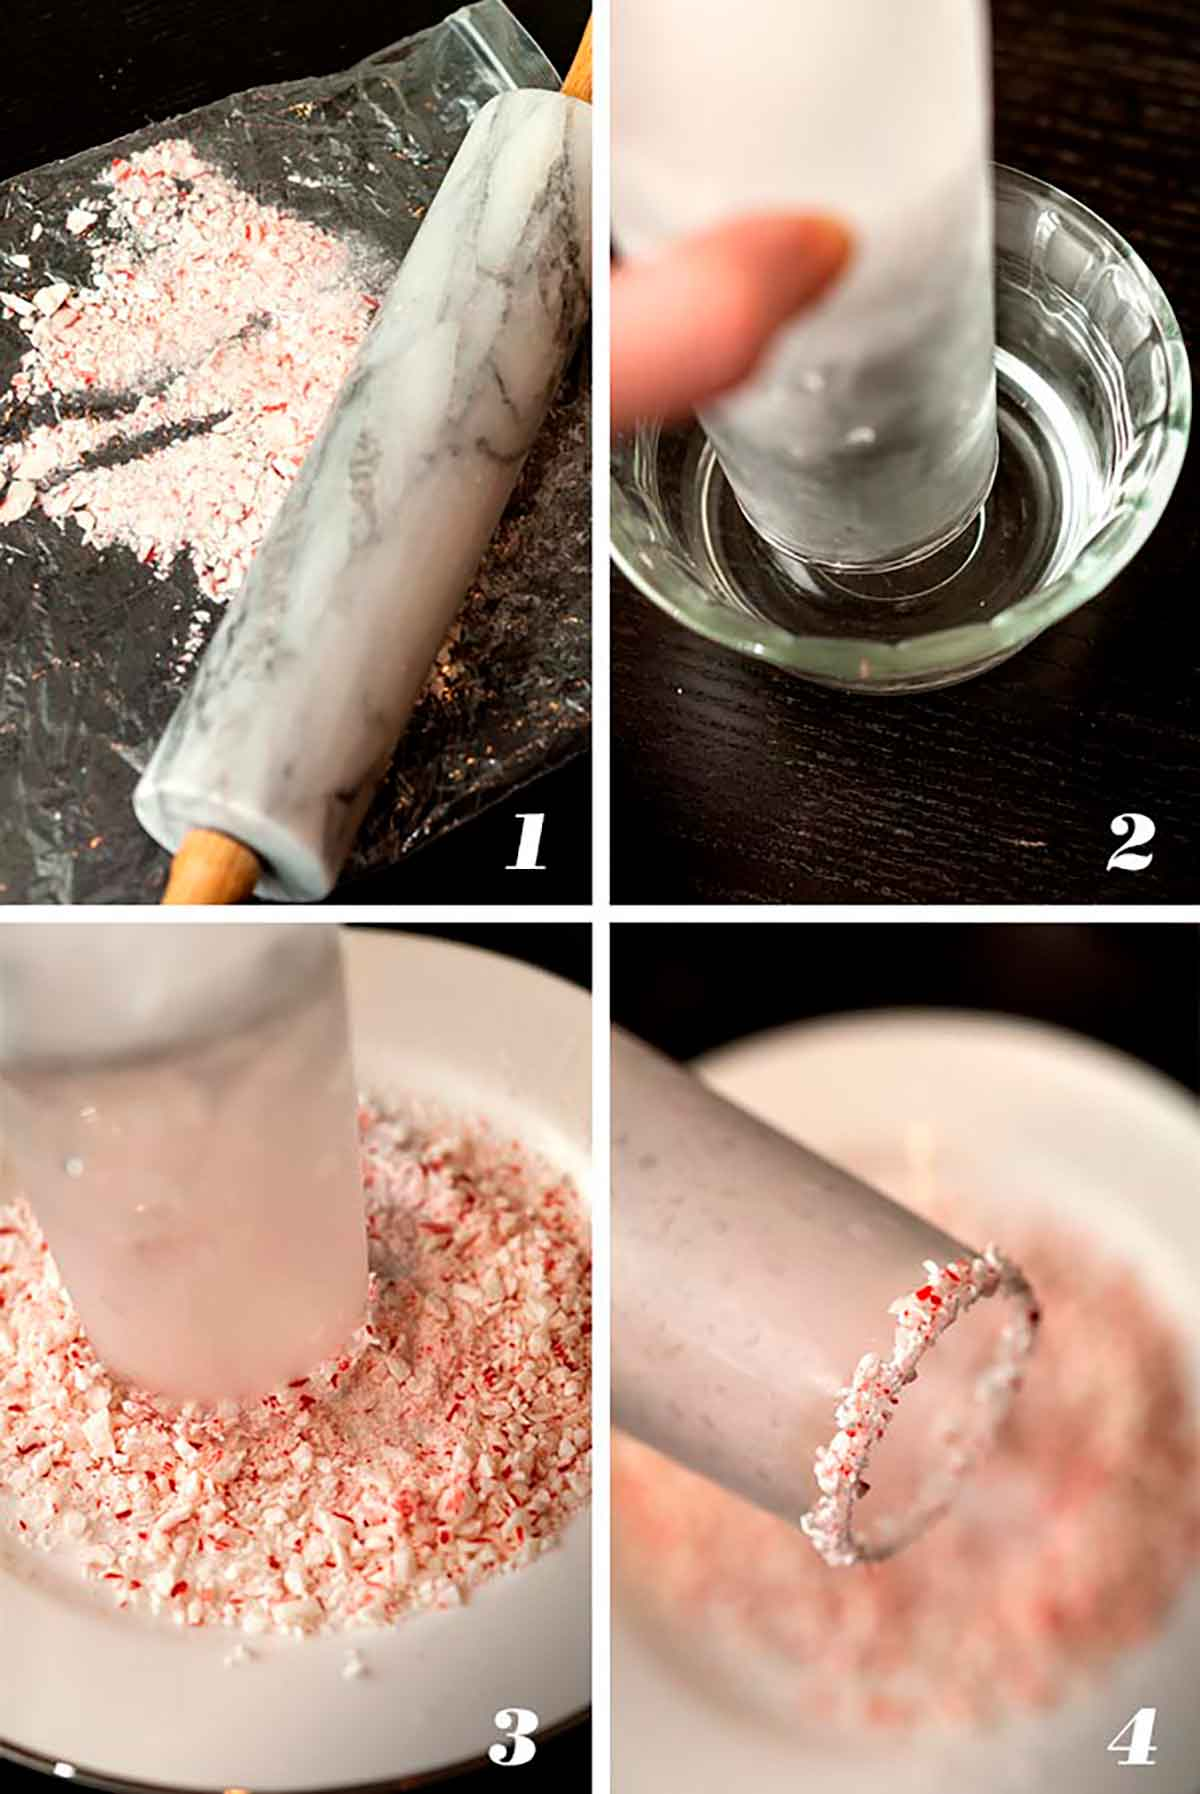 A collage of 4 numbered images showing how to make a candy cane garnish.